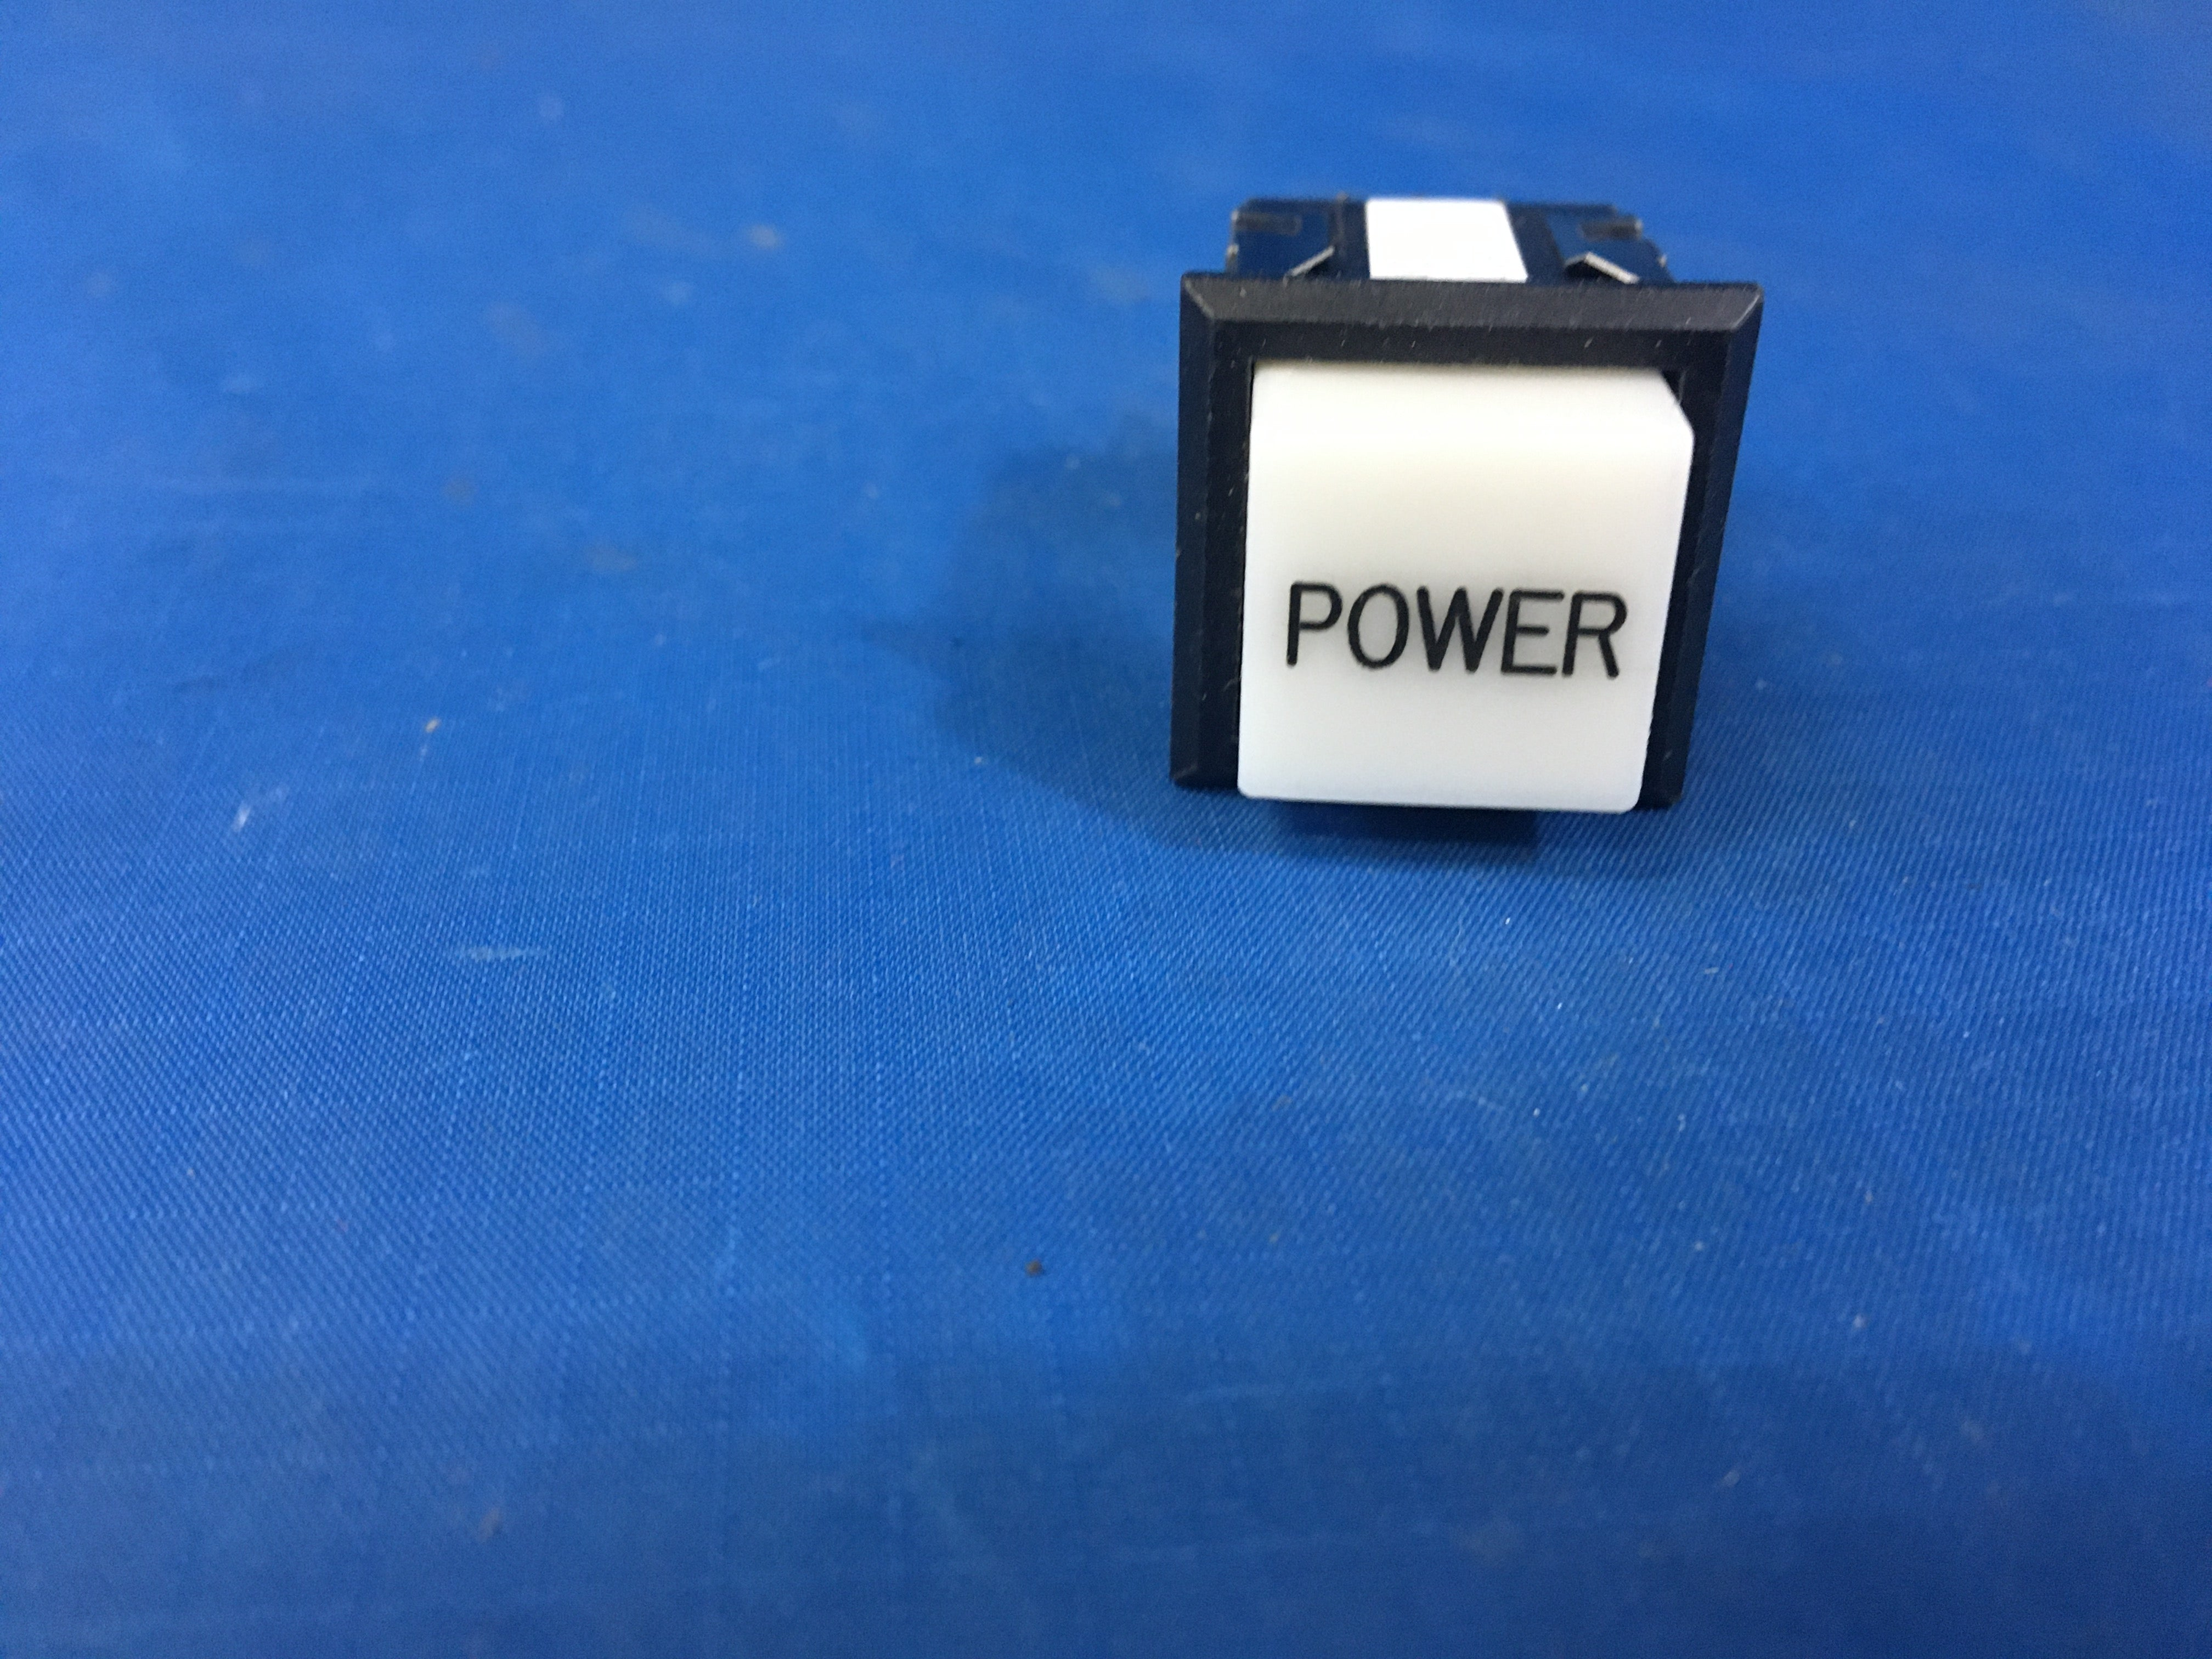 Eaton 849K22910 Push Switch NSN:5930-01-227-6888 P/N:83-1550-5644